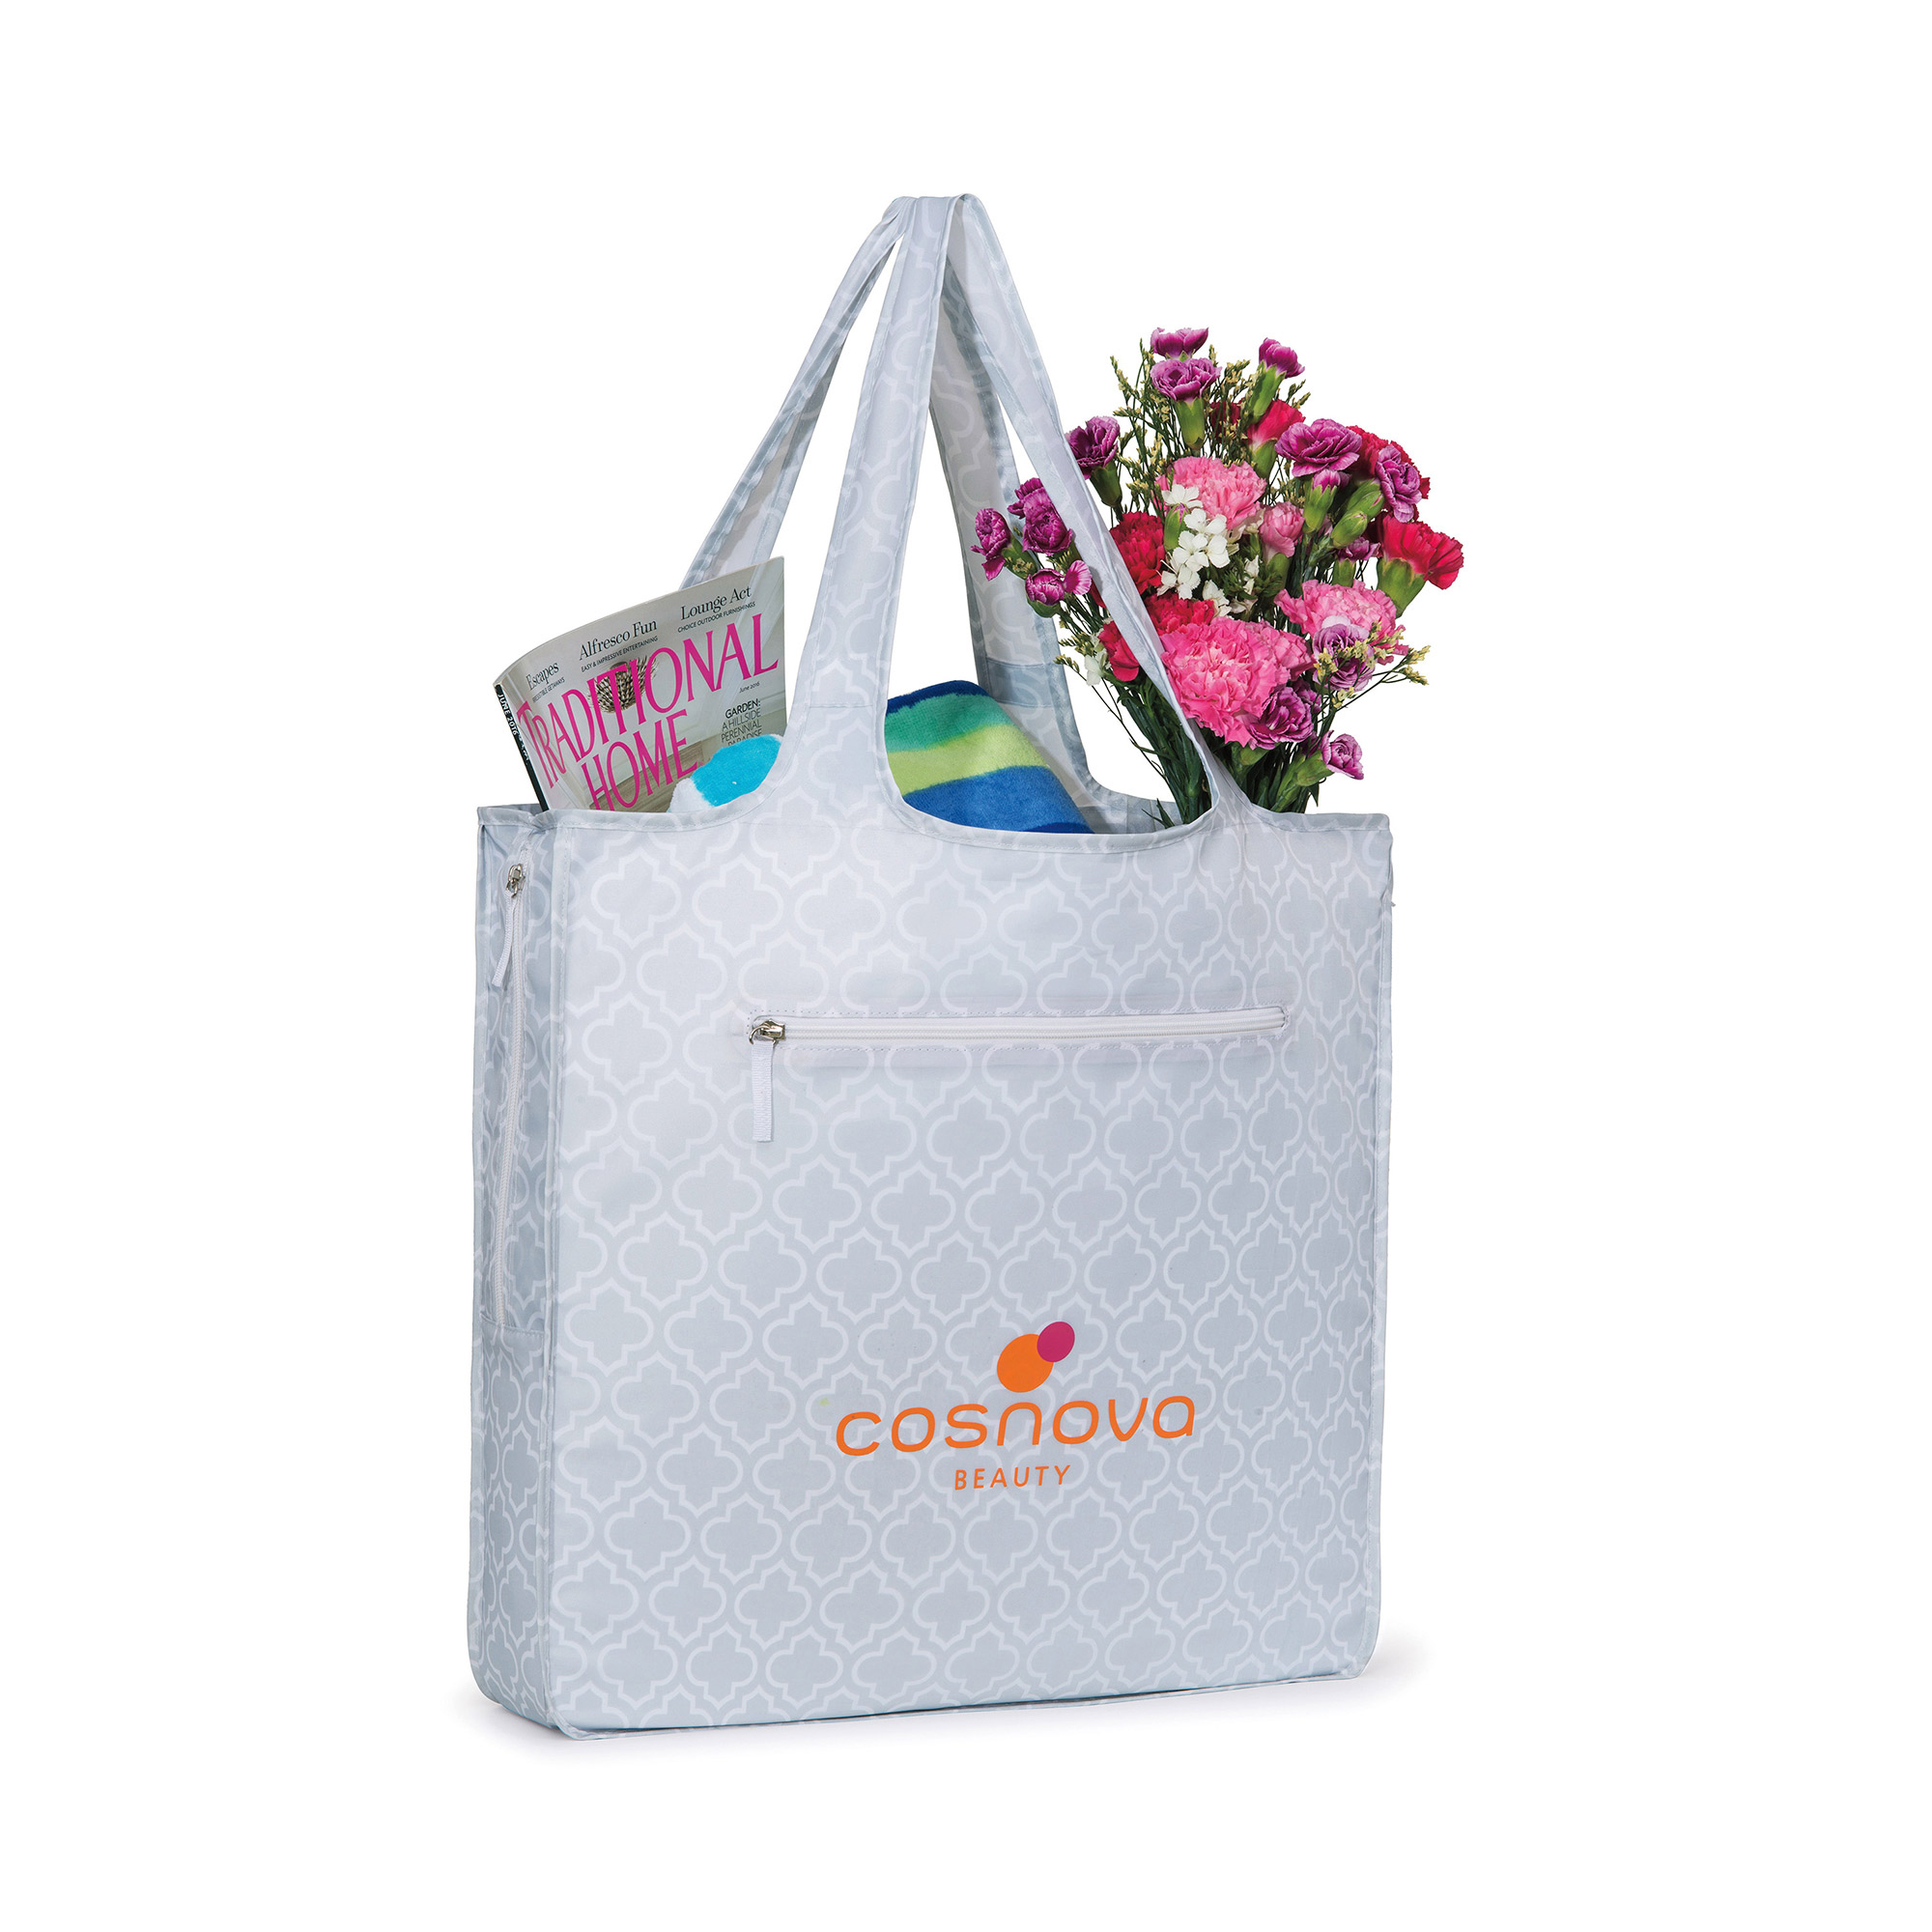 Deluxe sized tote with front zipper pocket and interior drop pocket.